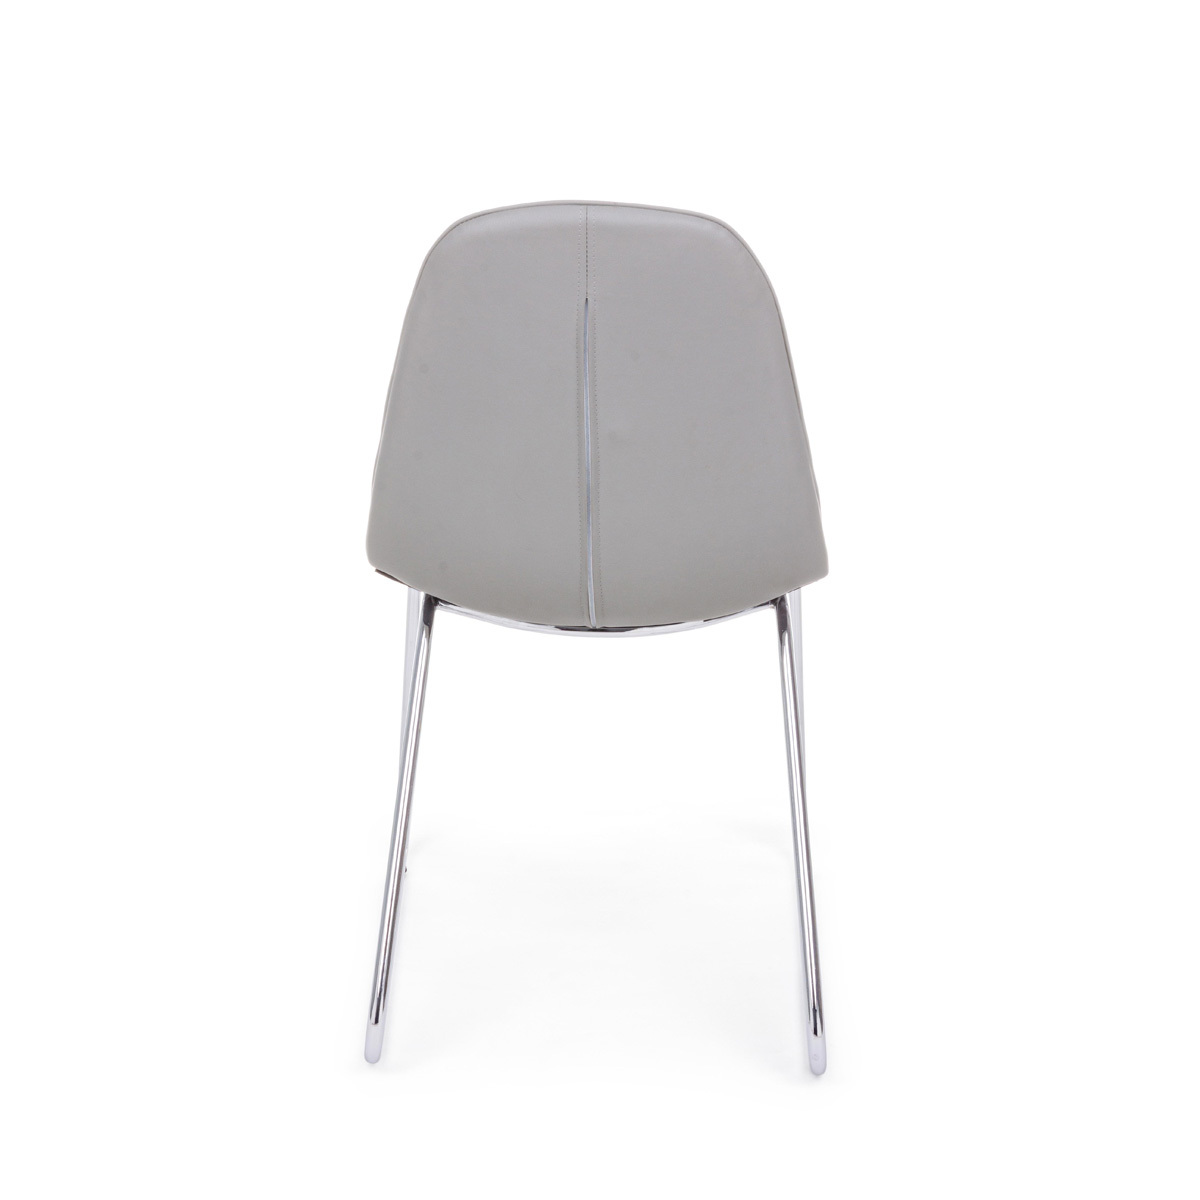 Photos 3: Bizzotto Chair in metal and eco-leather - corda 0731712